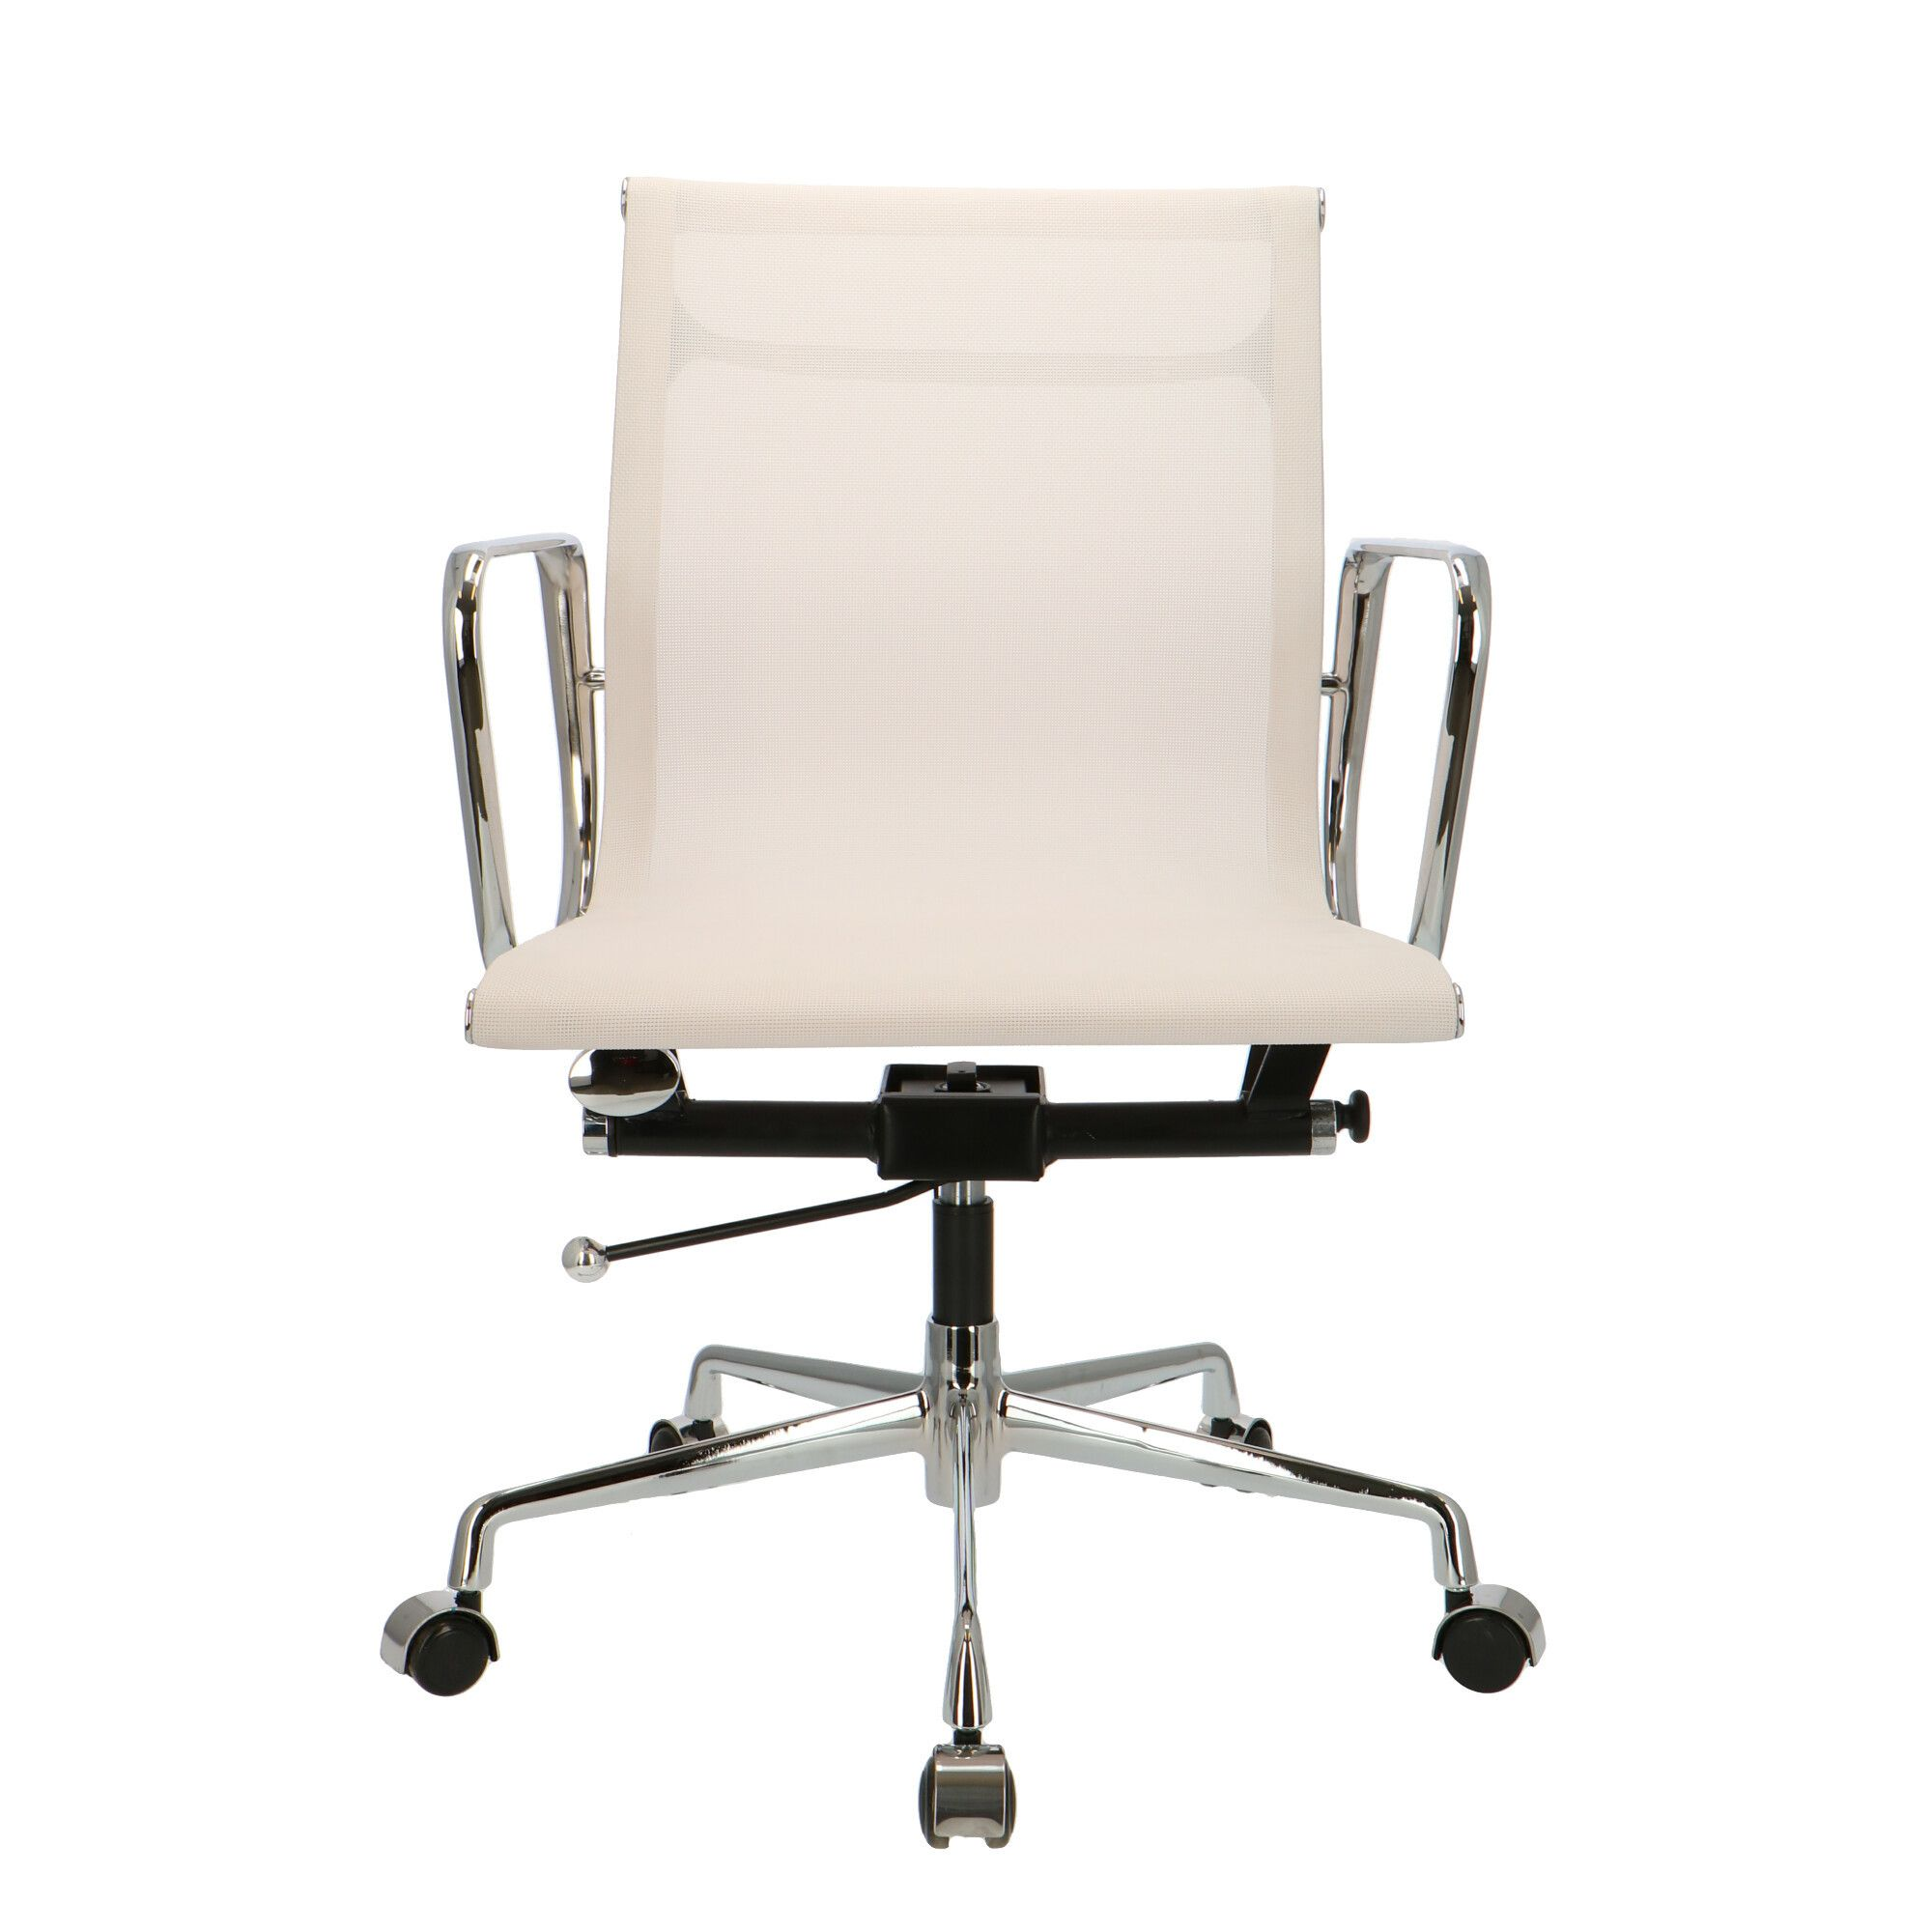 Chair Eames Eames Office Chair Ea 117 White Mesh | Popfurniture.com